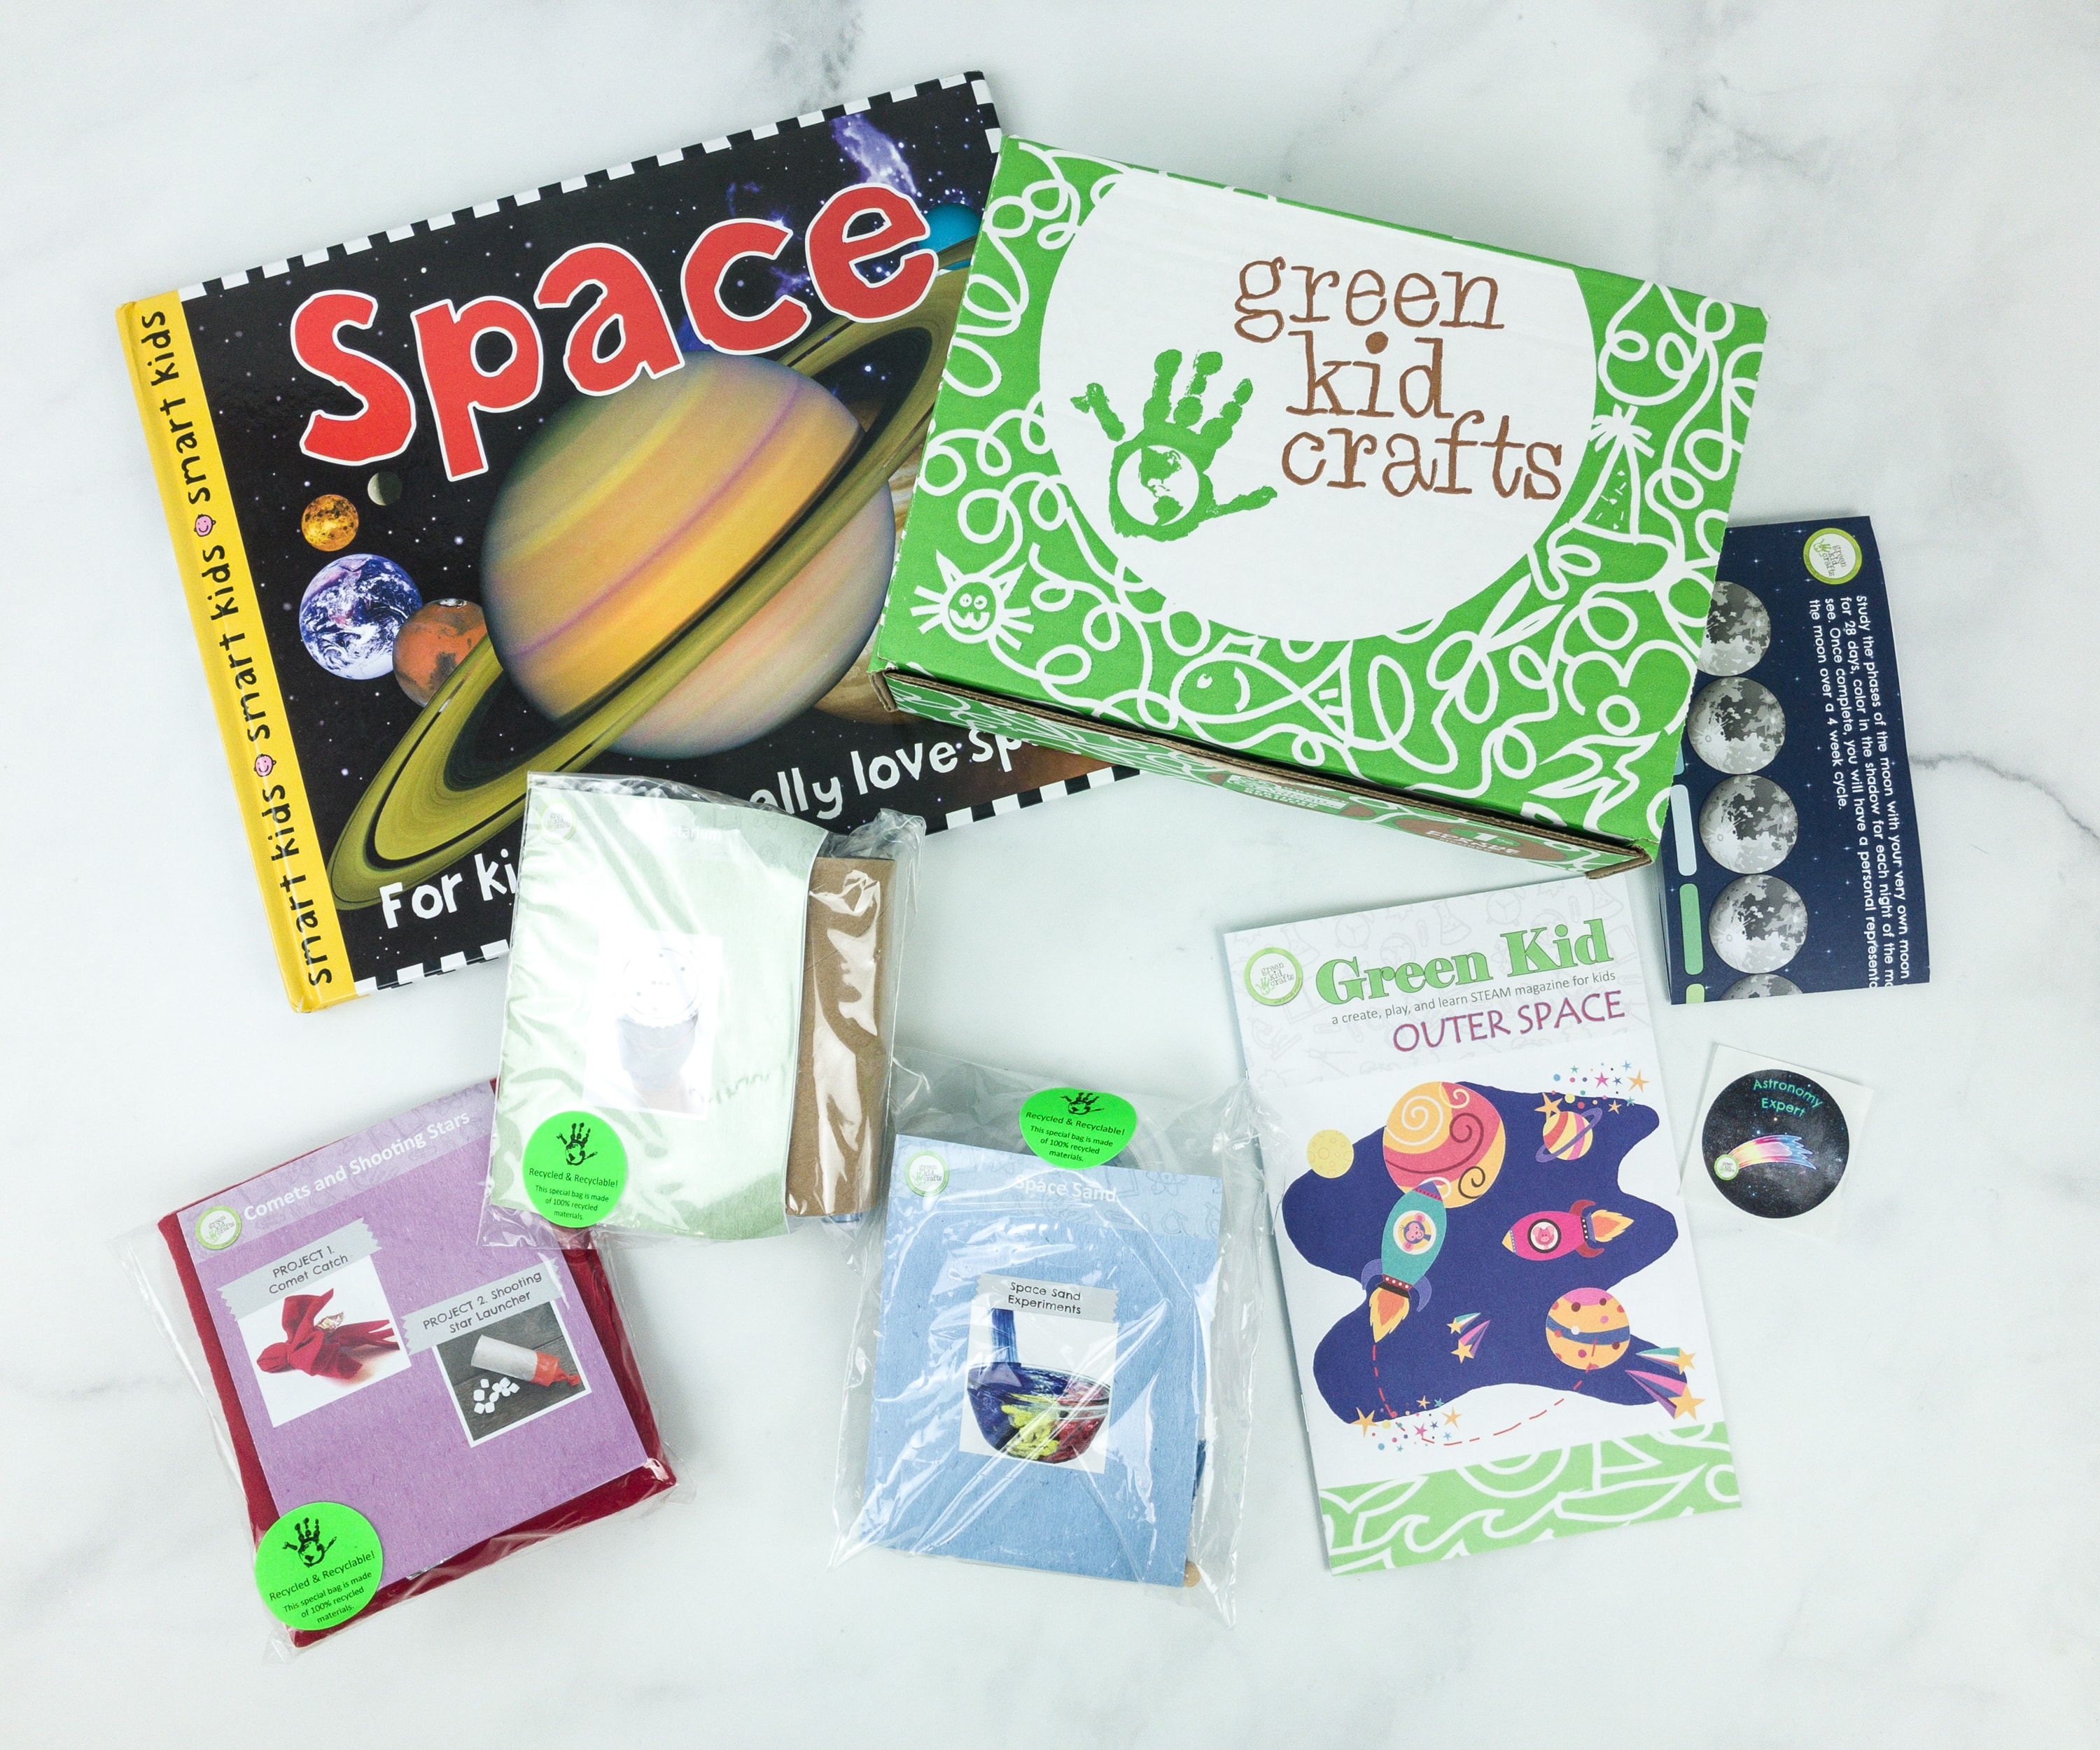 Green Kid Crafts January 2019 Subscription Box Review + 50% Off Coupon!